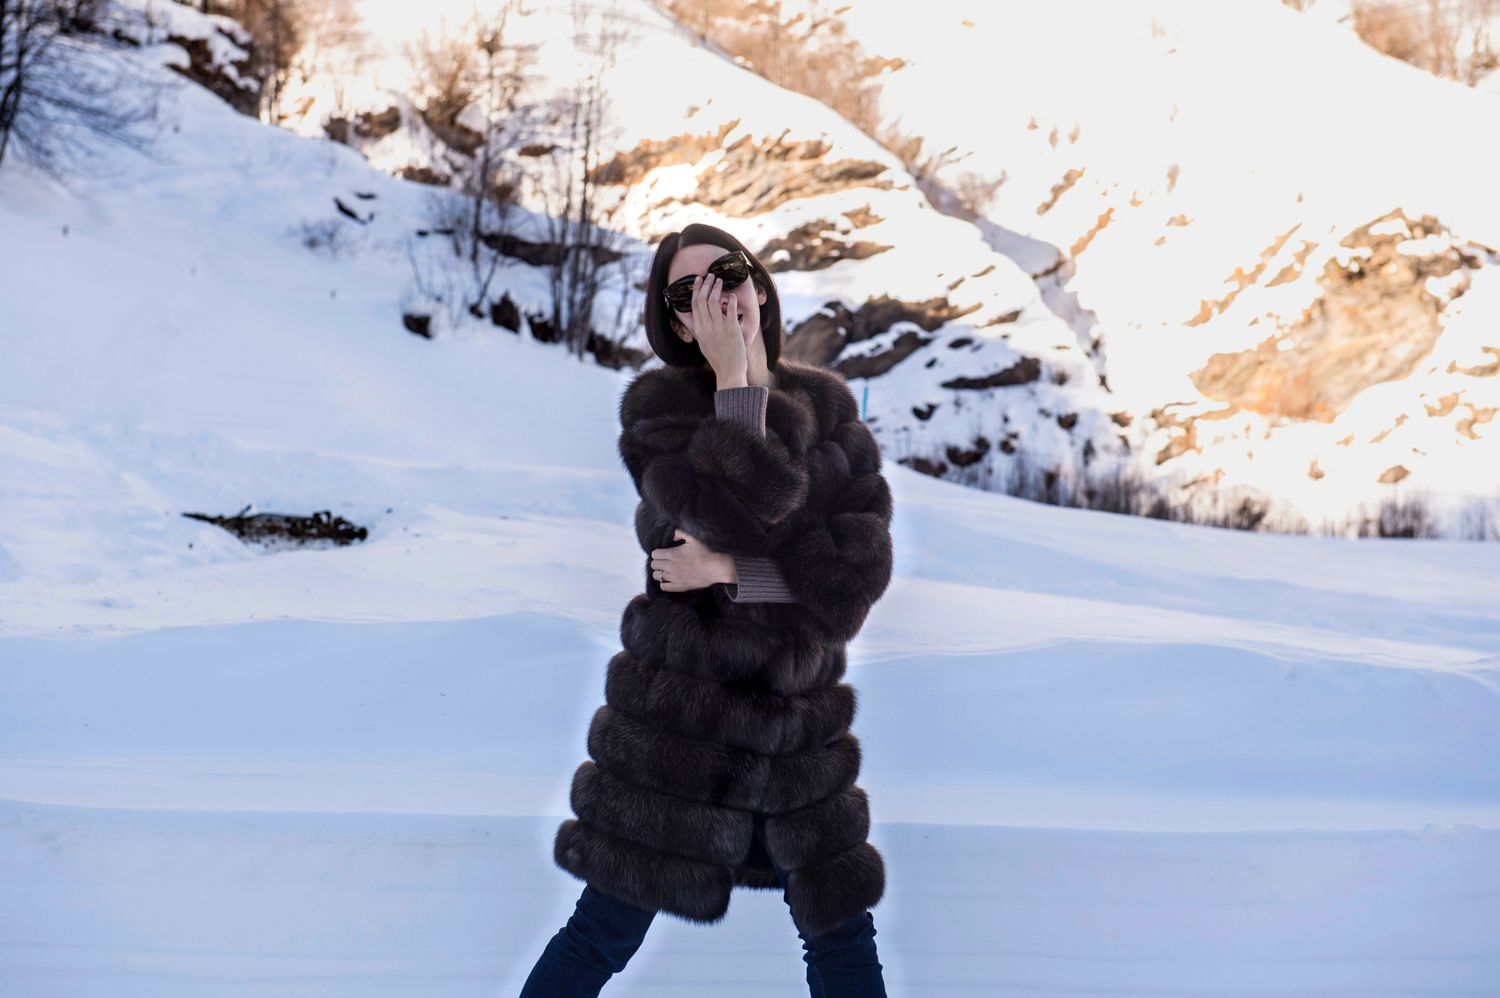 christina ghilemetti sable fur wore by lady fur